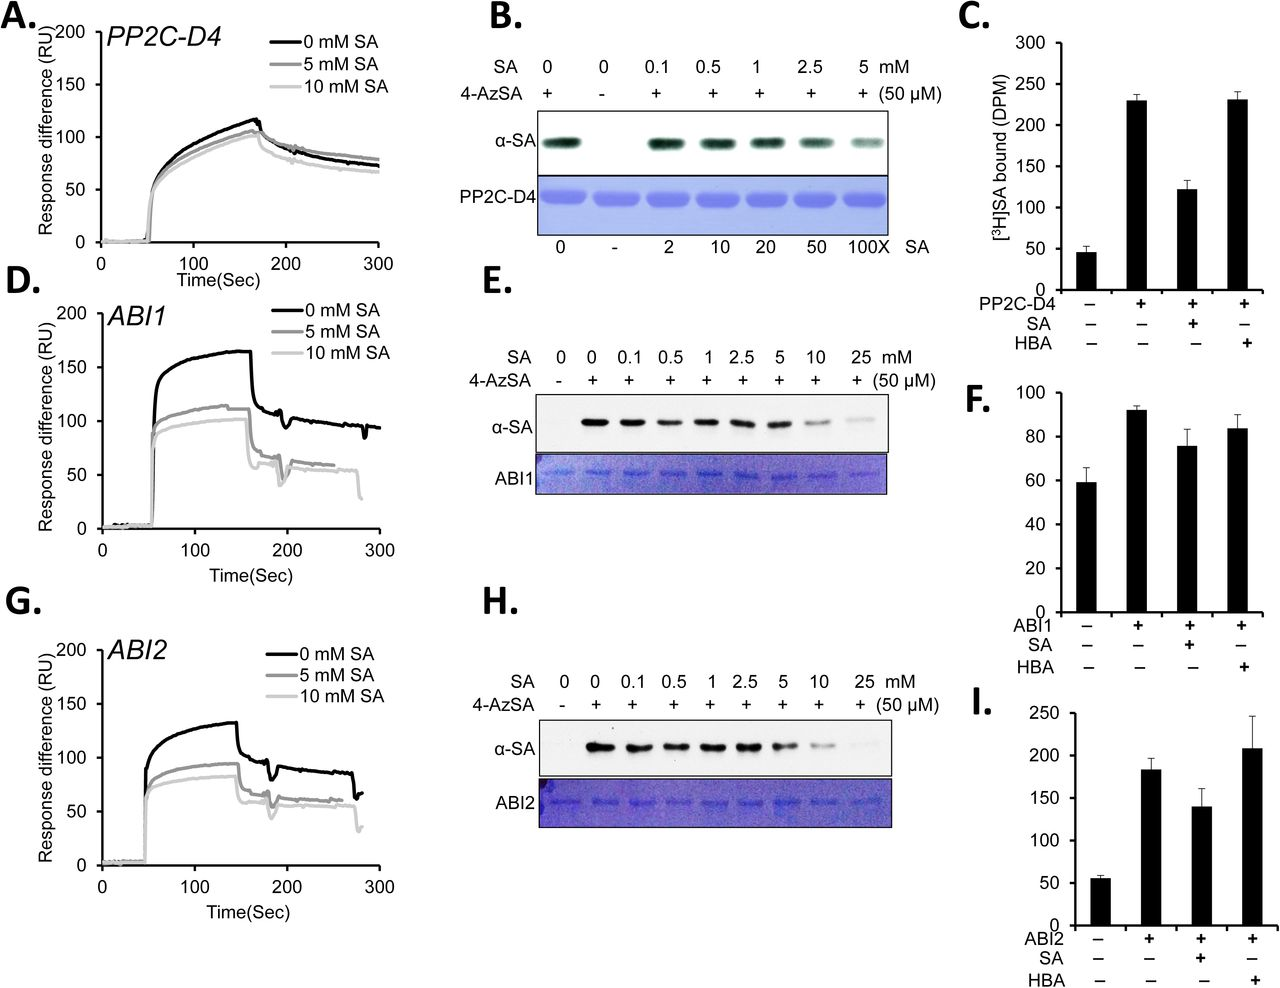 Members of the abscisic acid co-receptor PP2C protein family mediate